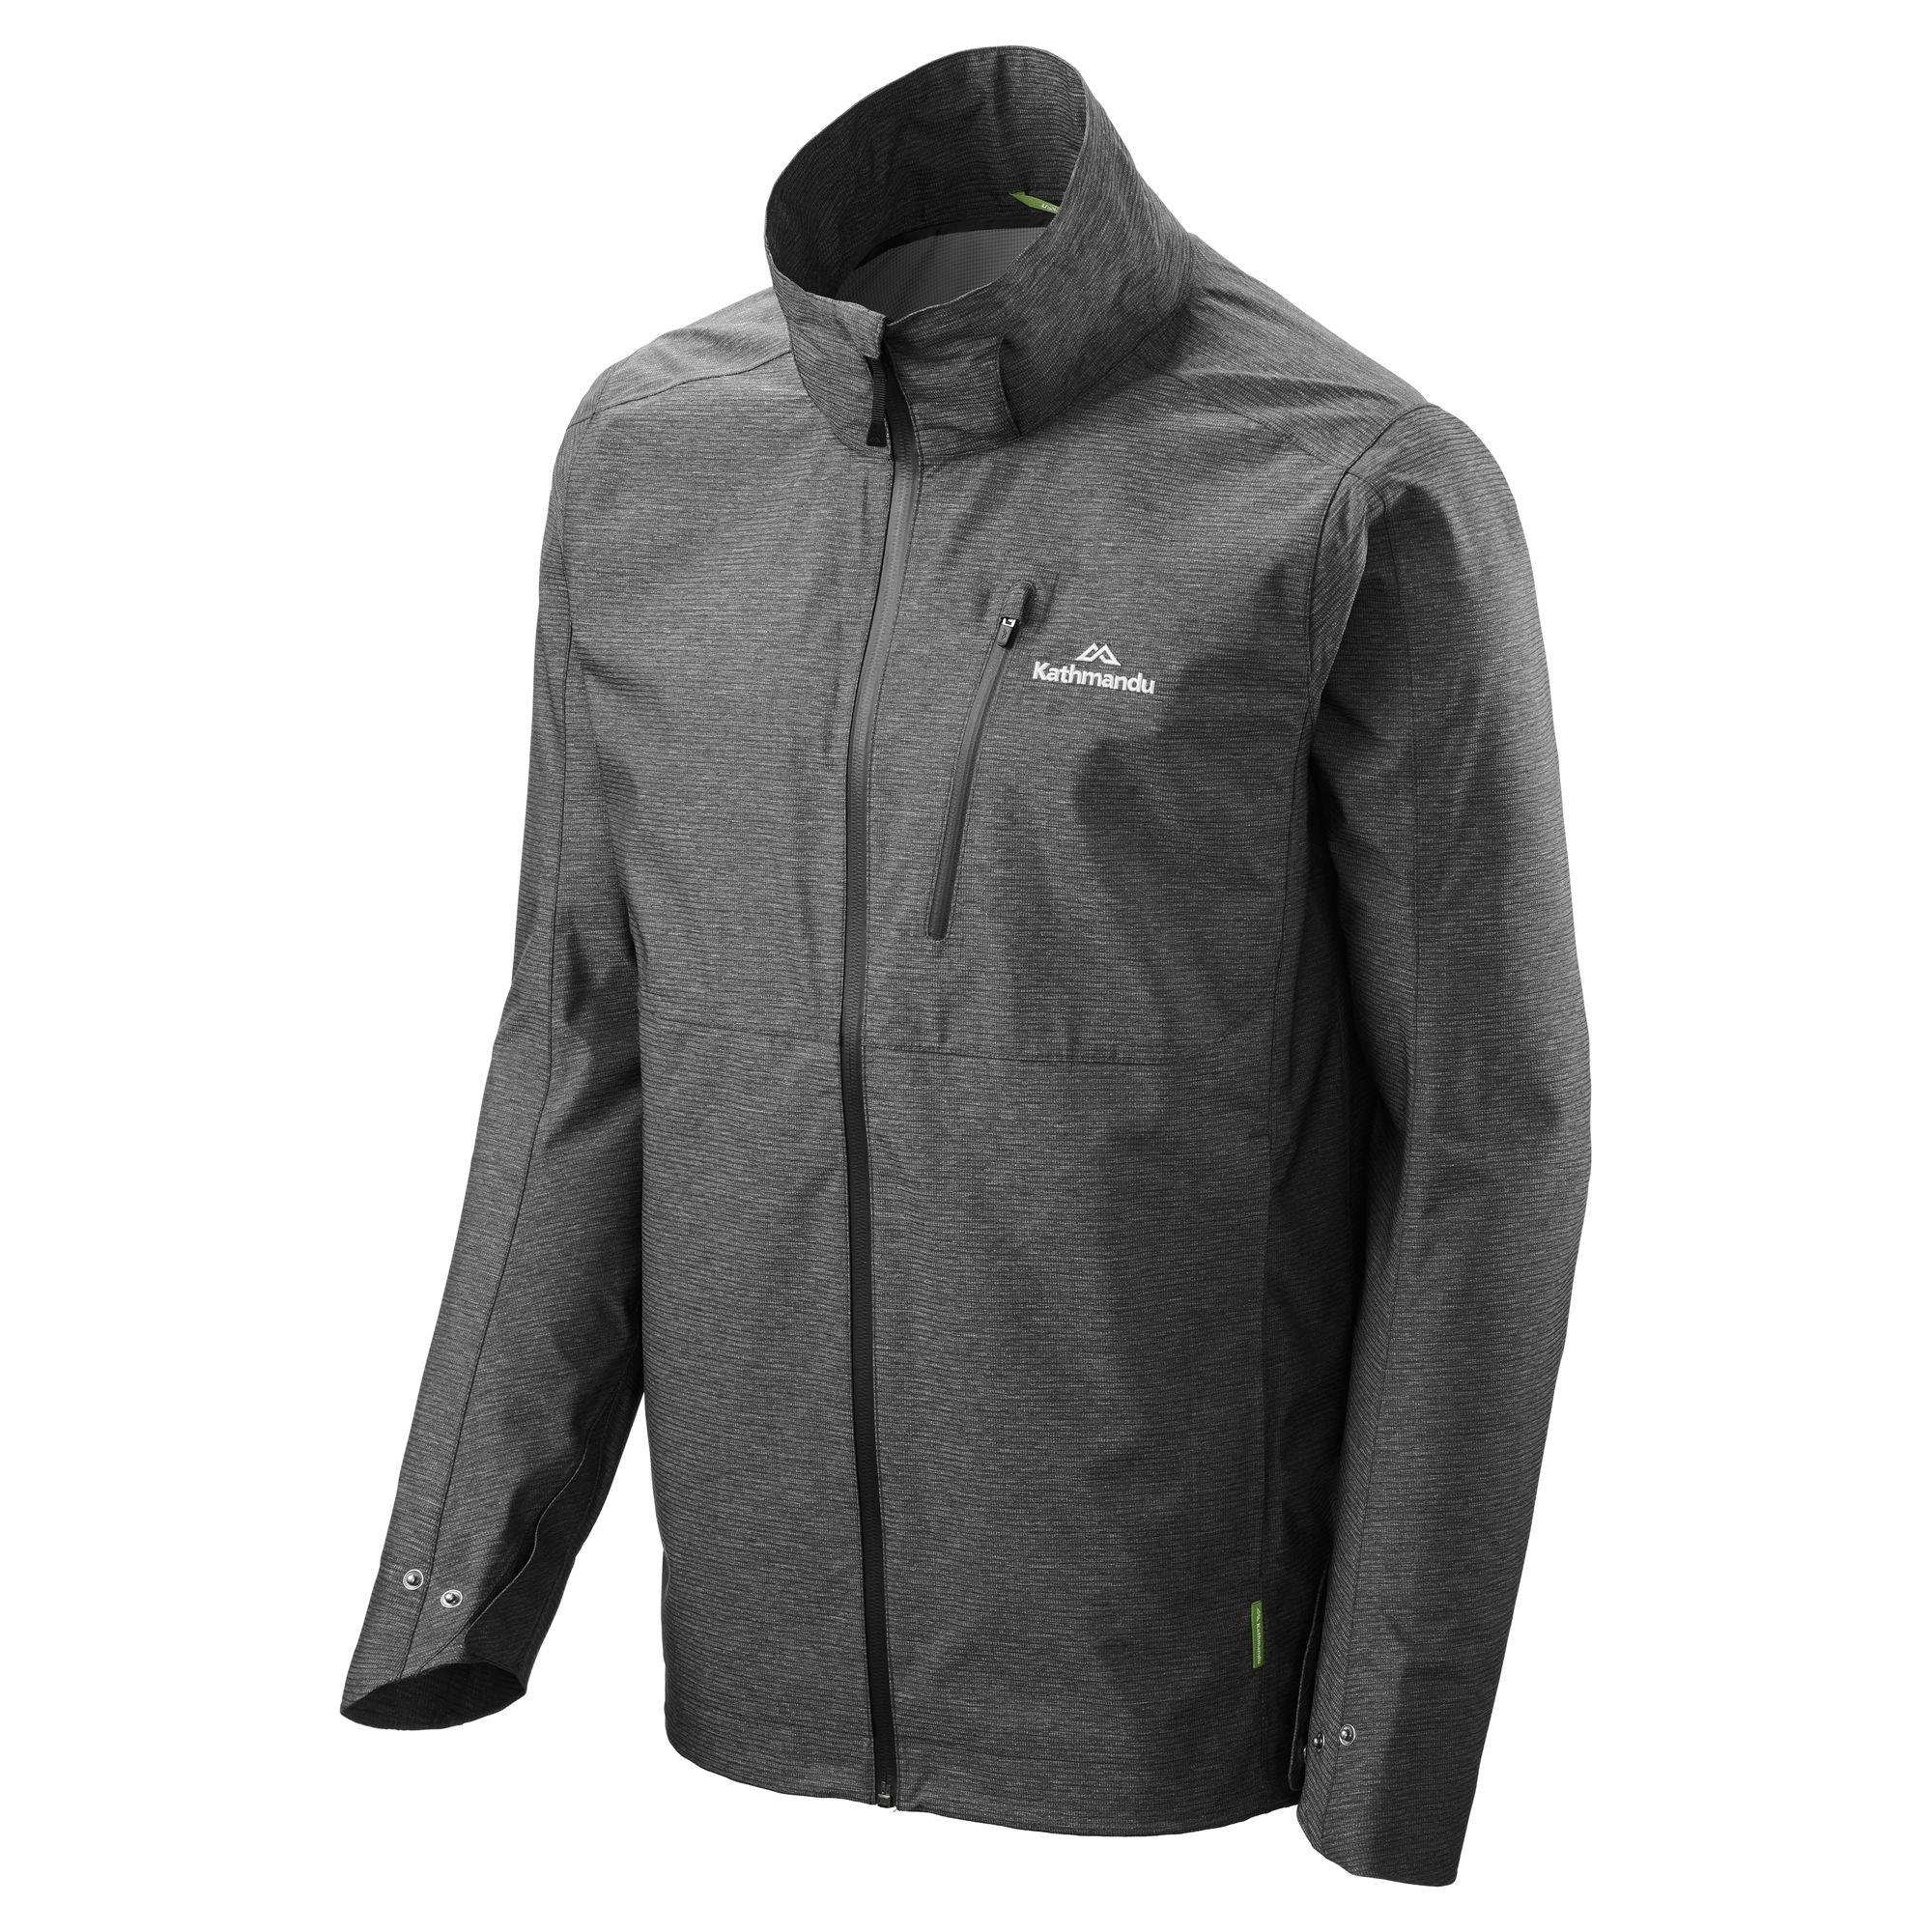 NEW-Kathmandu-Lawrence-Men-039-s-ngx-Windproof-Waterproof-Outdoor-Rain-Jacket-v2 thumbnail 8